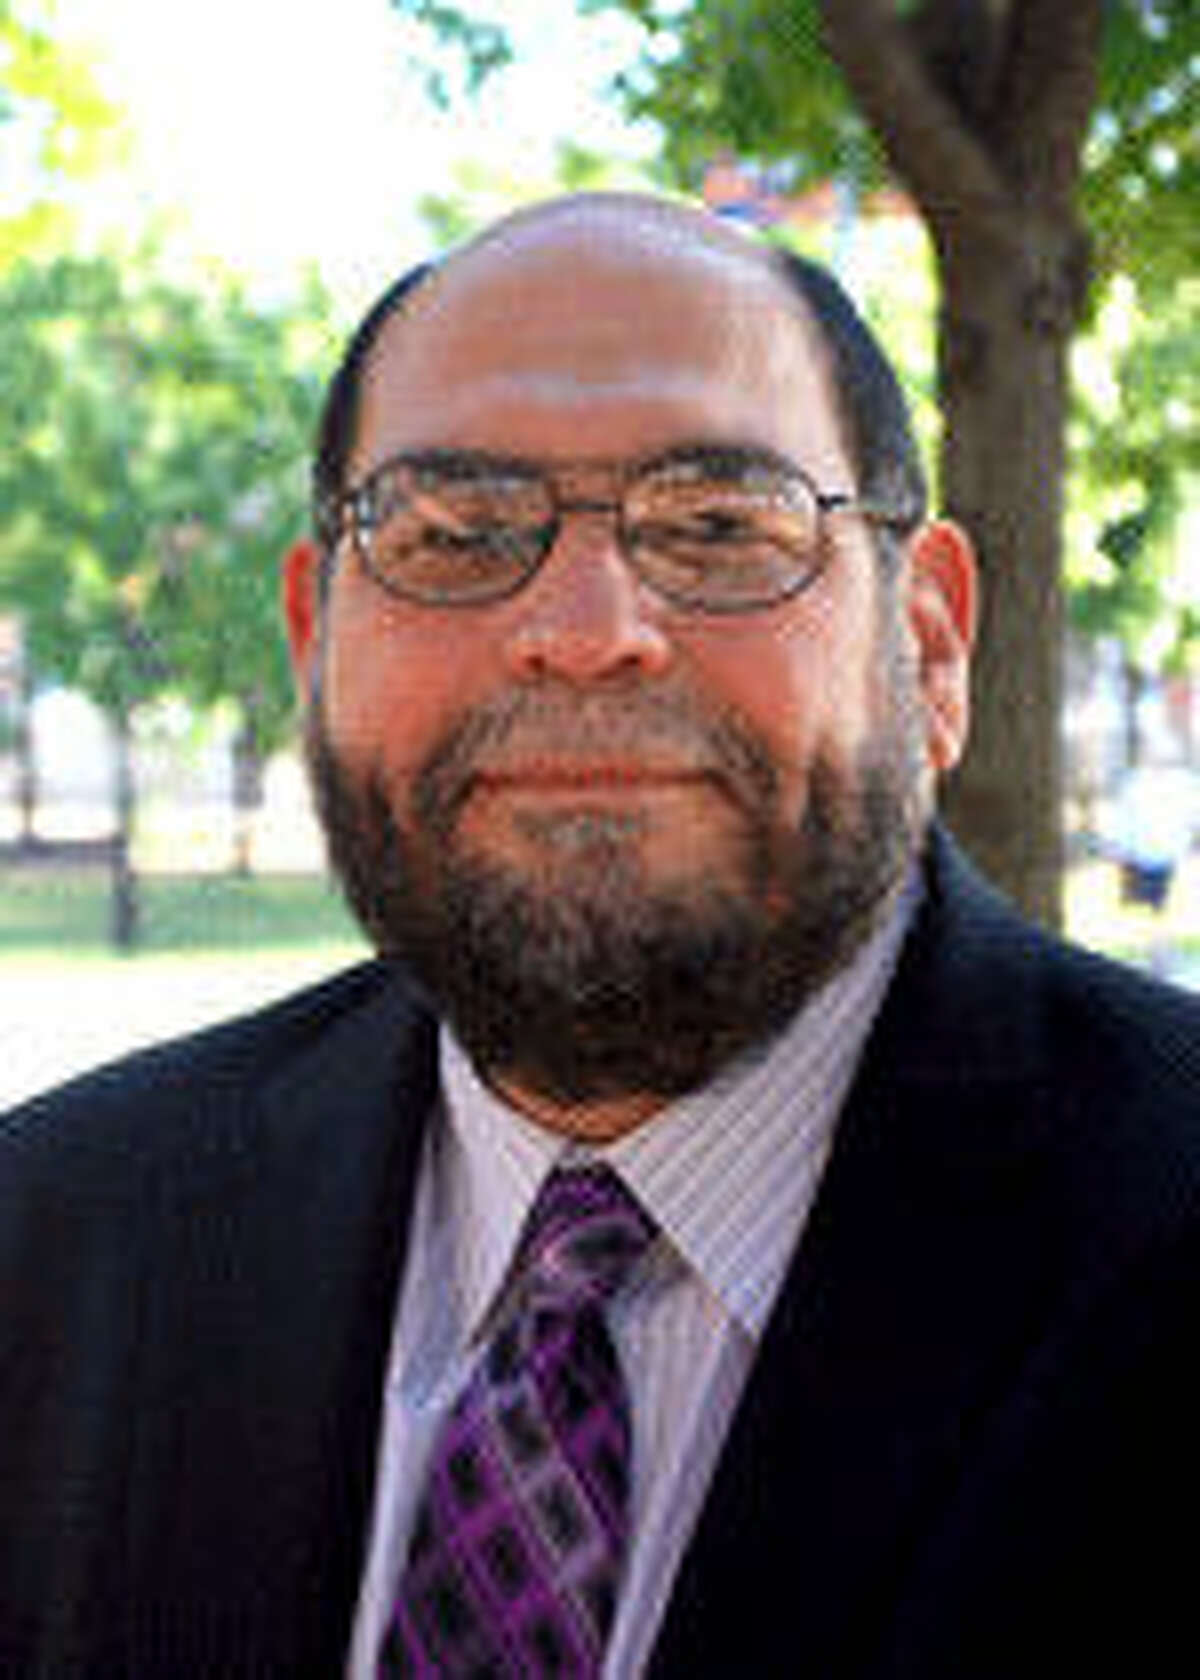 Rogelio Sáenz is a sociologist and demographer. He is dean of the College of Public Policy at the University of Texas at San Antonio.